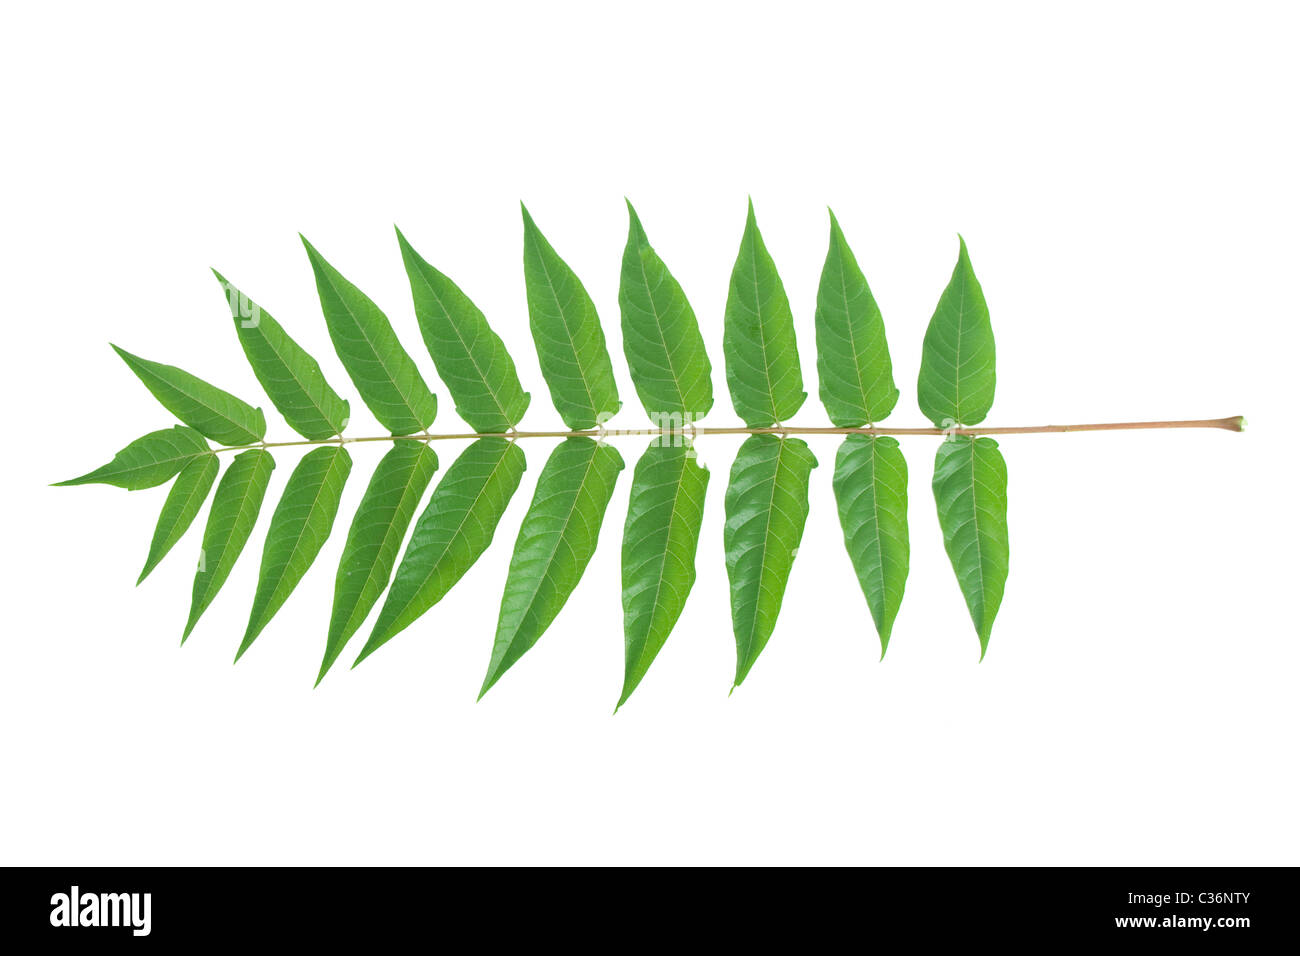 front view of green leafs on white background - Stock Image